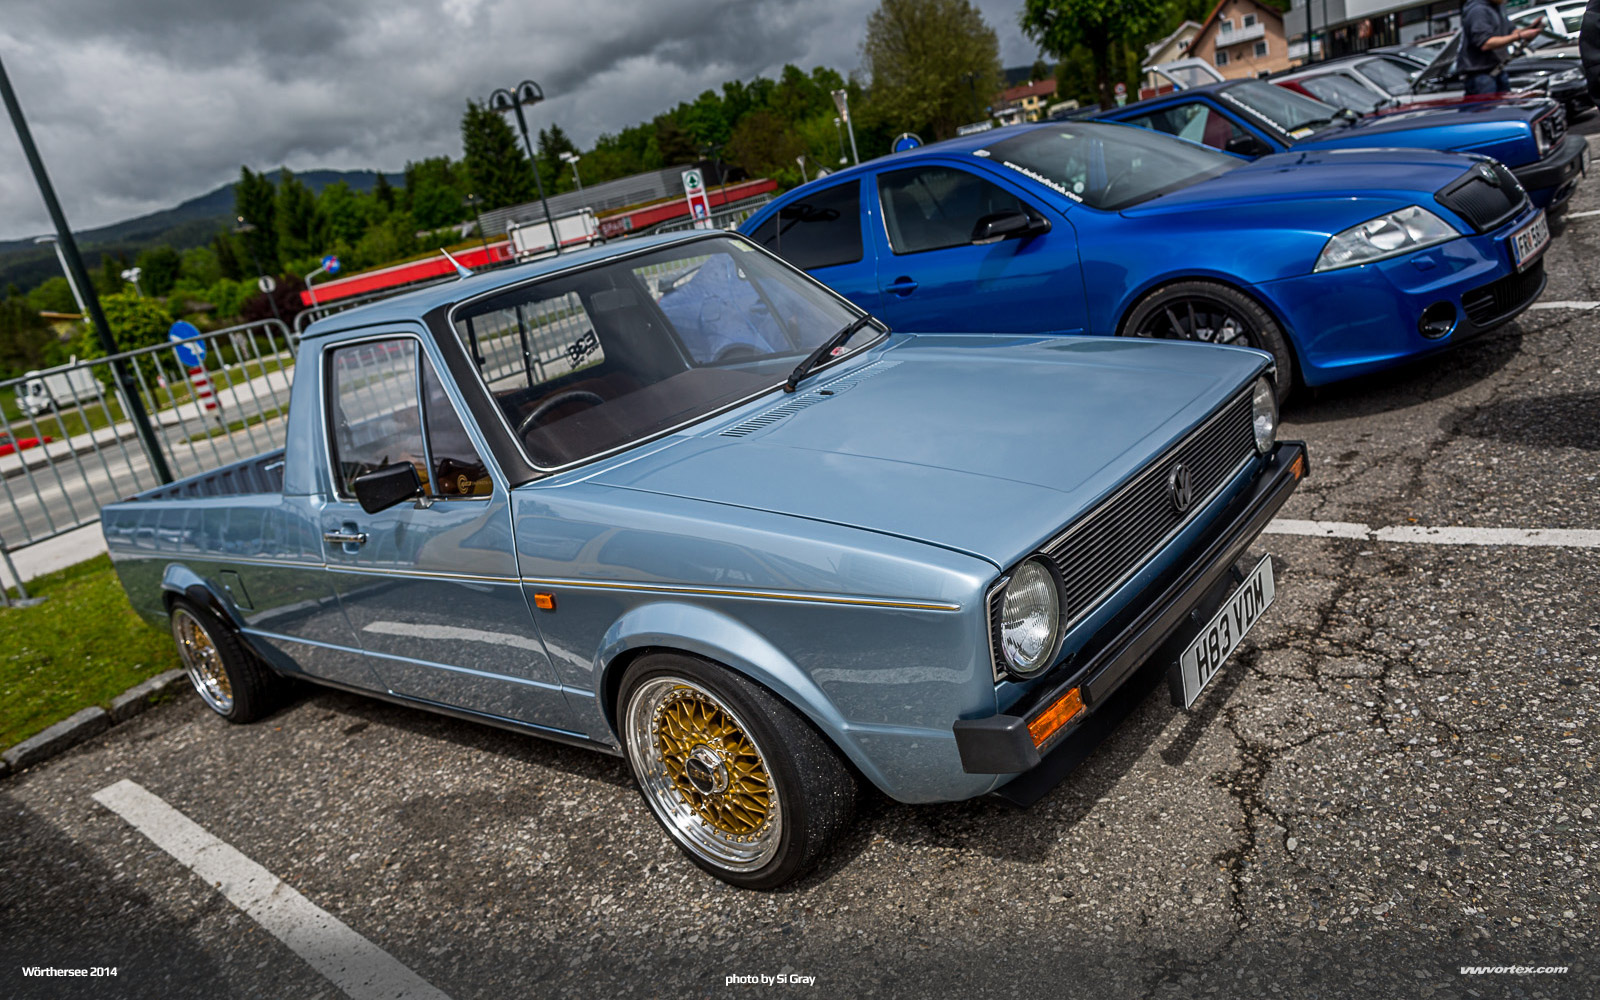 worthersee-2014-daytwo-si-gray-381